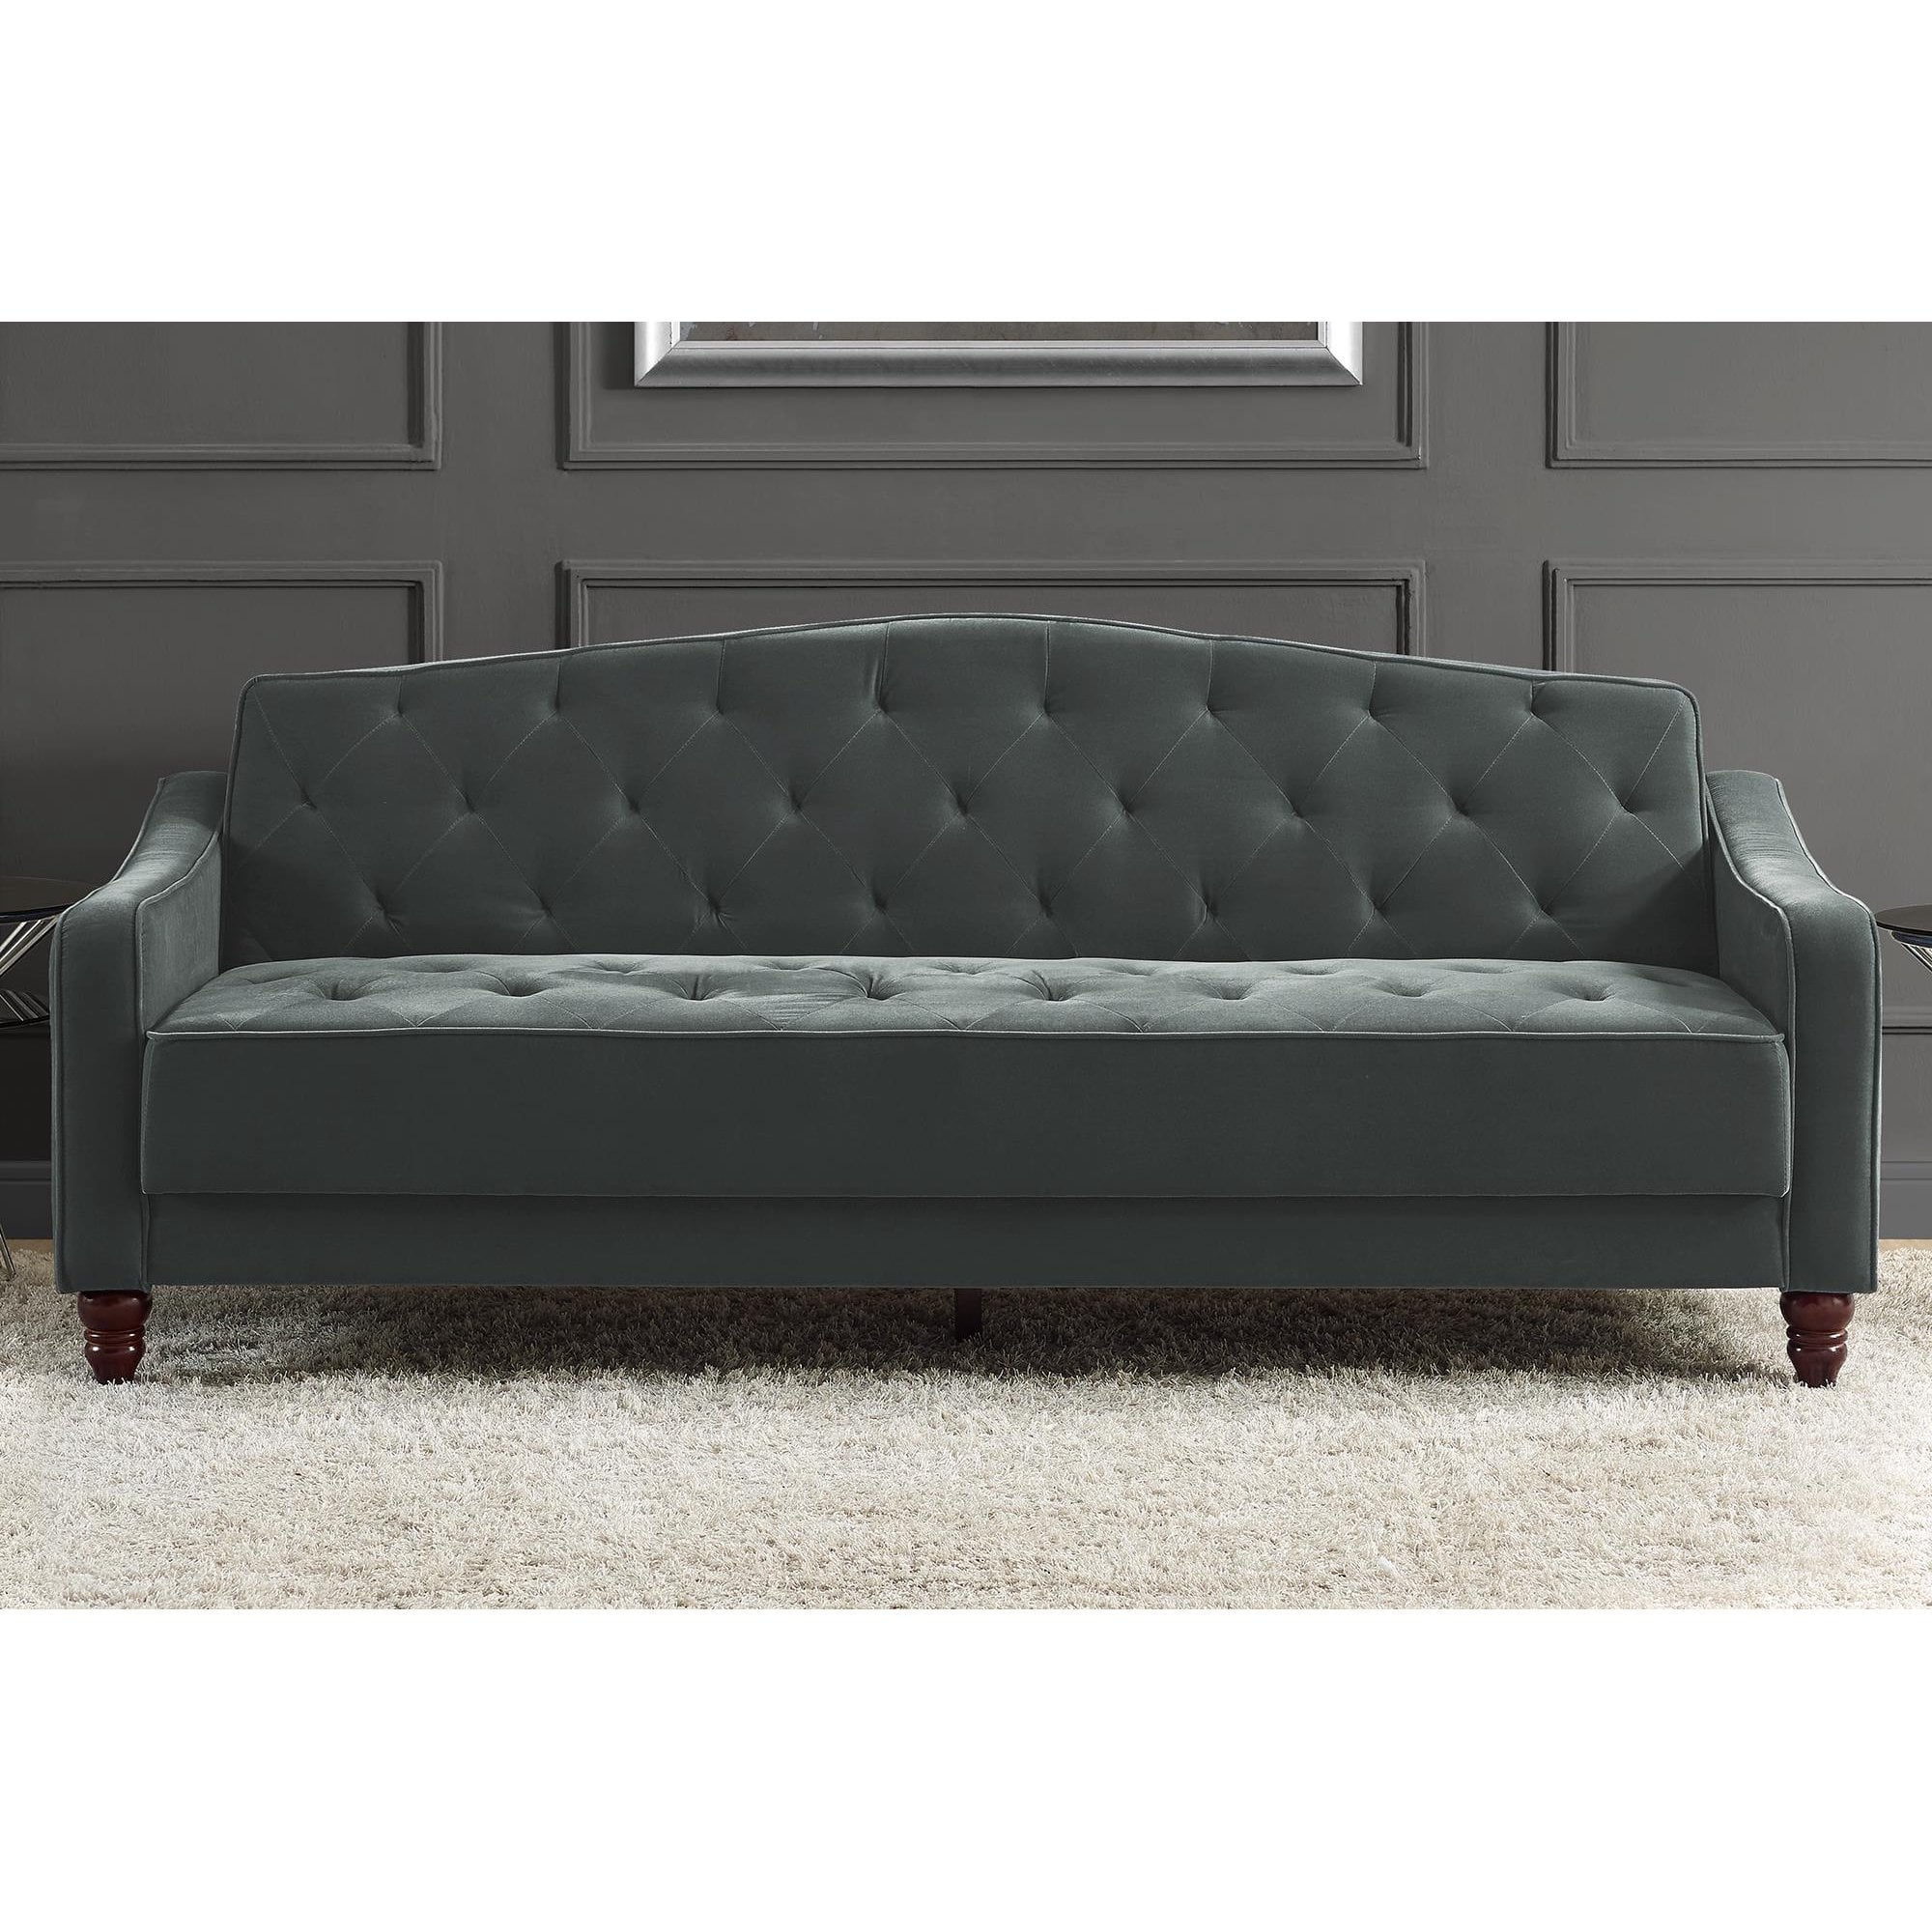 Novogratz Vintage Tufted Sleeper Sofa Bed Ii These 13